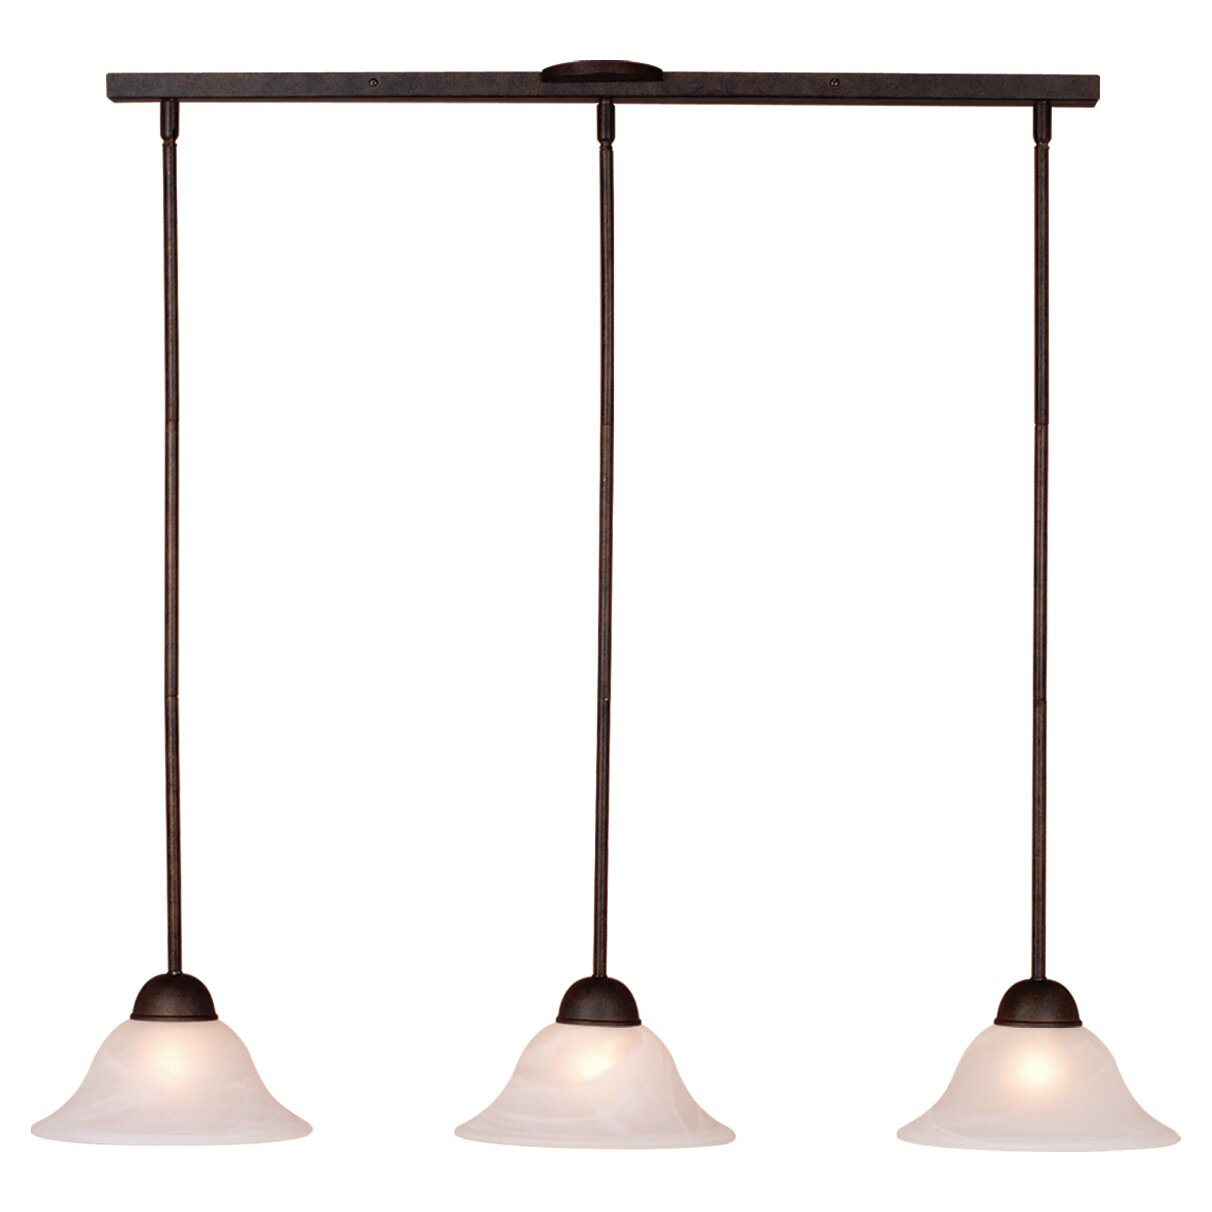 3 Light Kitchen Island Pendant Vaxcel Da Vinci 3 Light Kitchen Island Pendant Reviews Wayfair